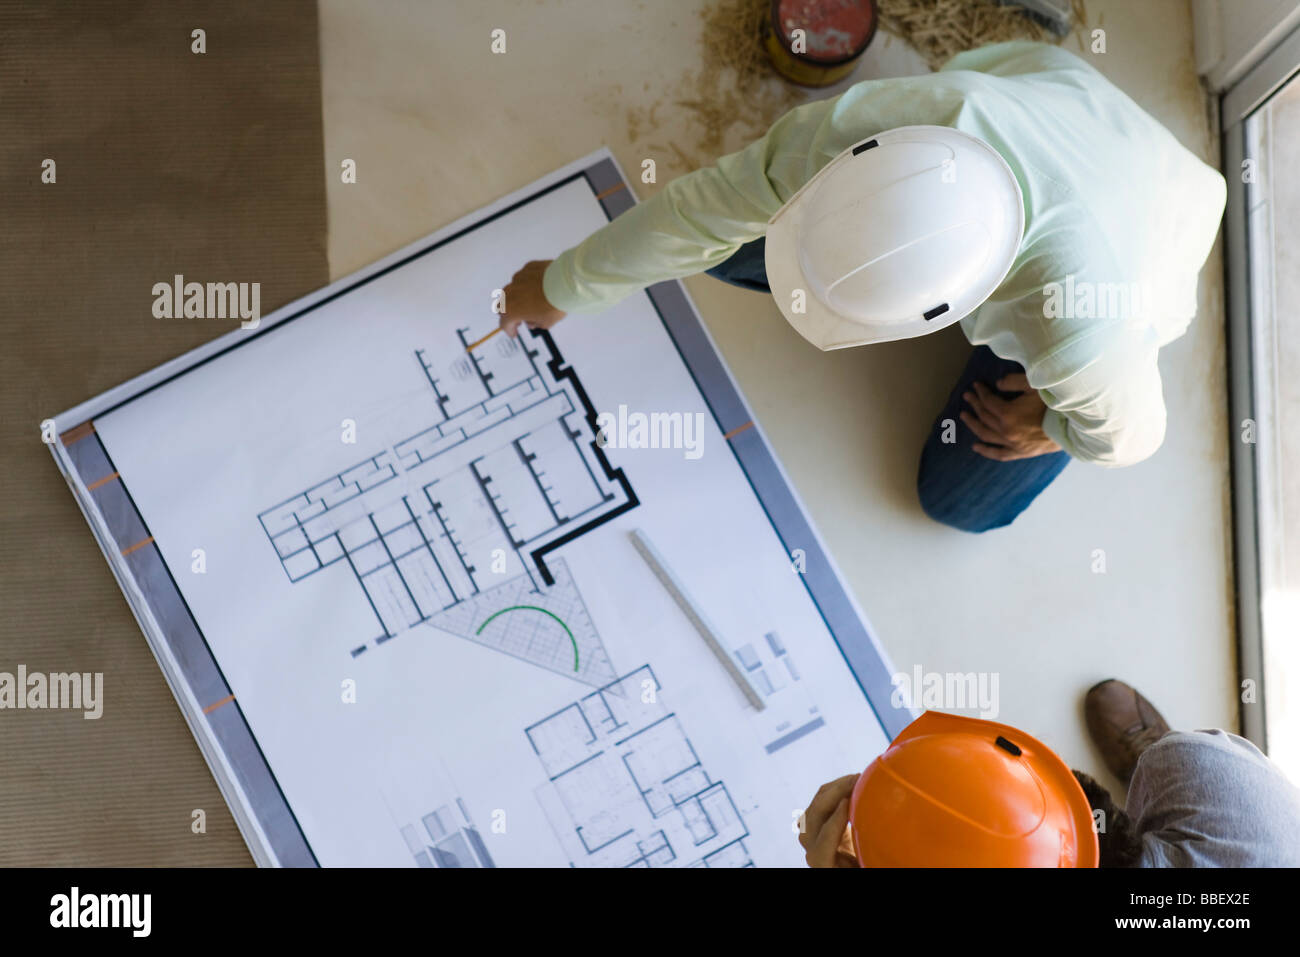 Two men reviewing blueprint spread out on floor - Stock Image